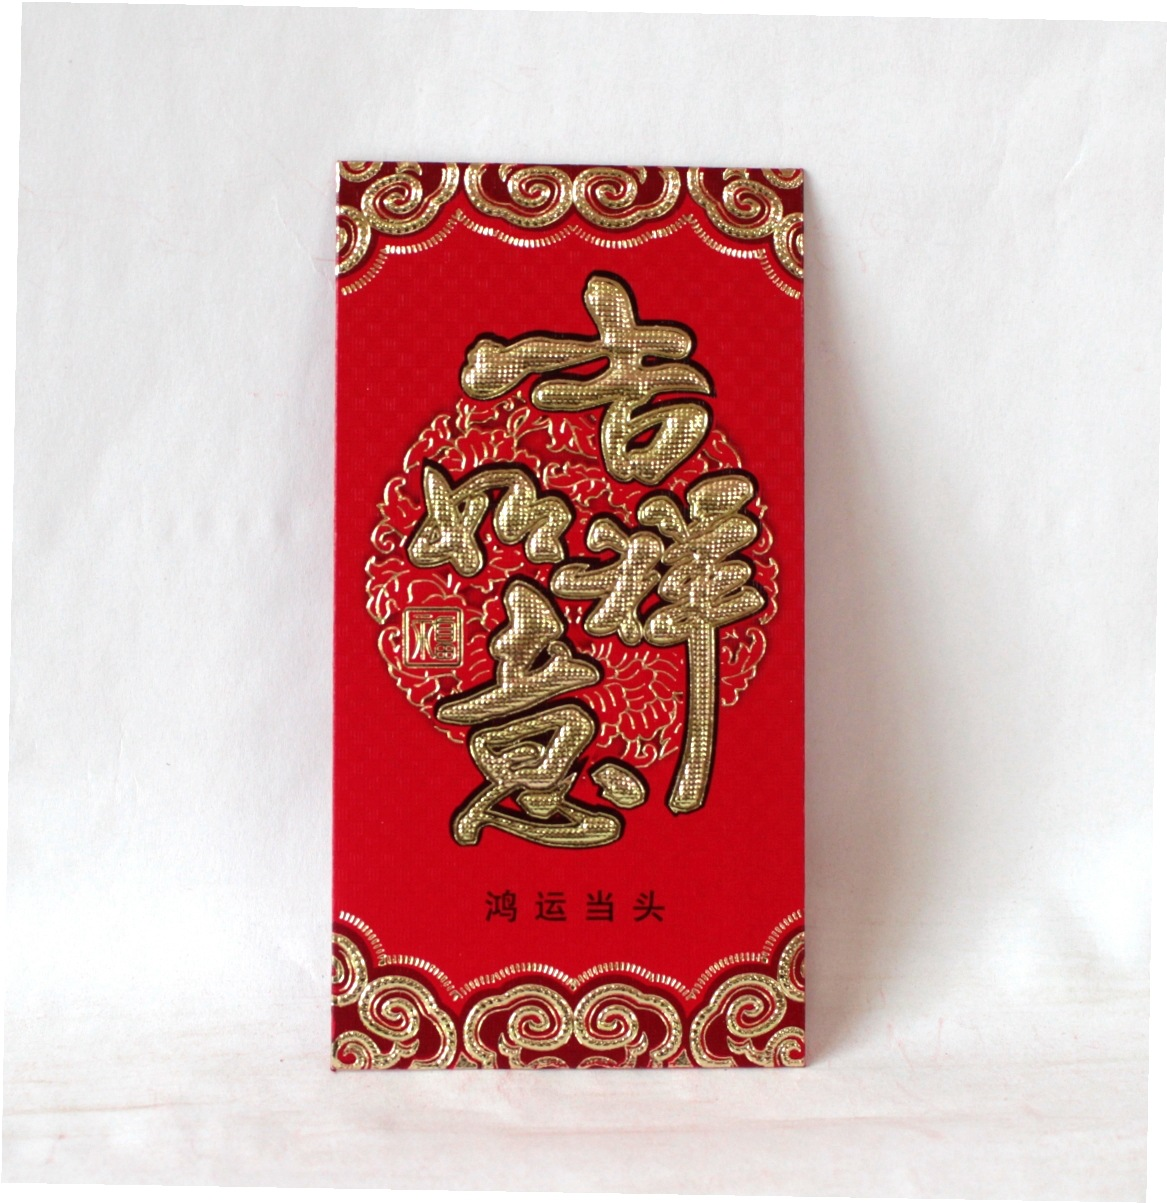 2018 New Style Festive Supplies New Year Red Packet Relief Bronze Red Envelope Spring Festival  new YEAR'S Greetings Thousand Yu